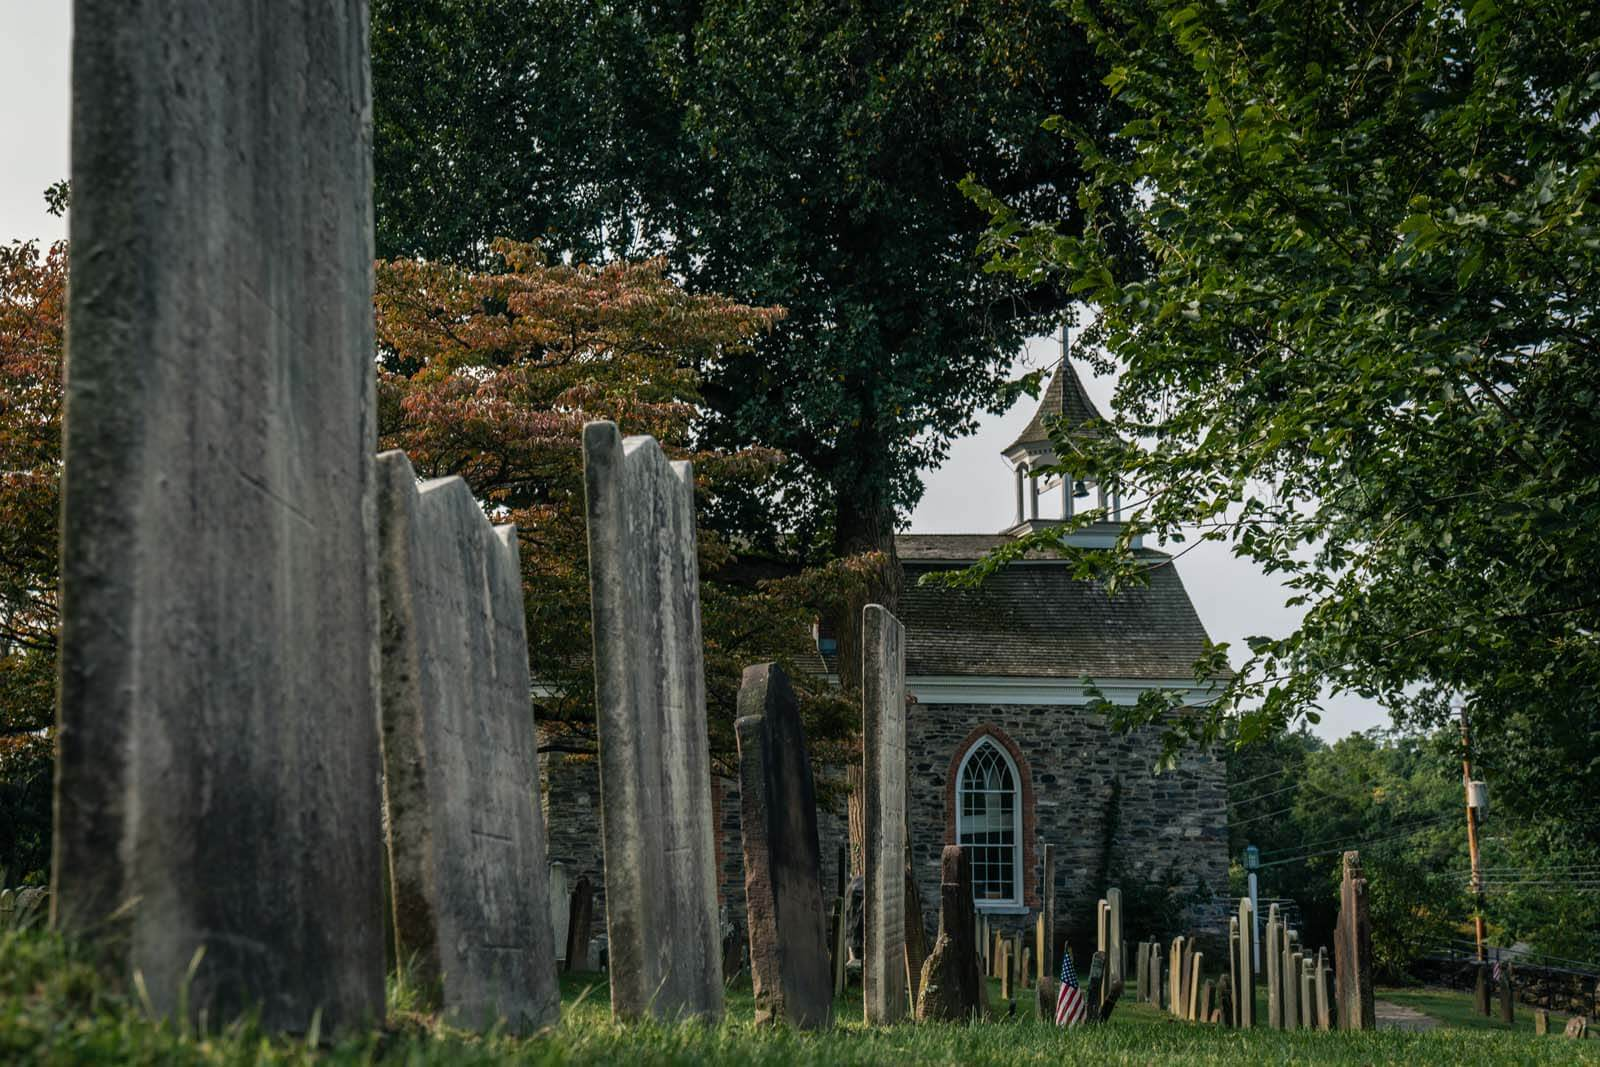 The Old Dutch Reformed Church in Sleepy Hollow